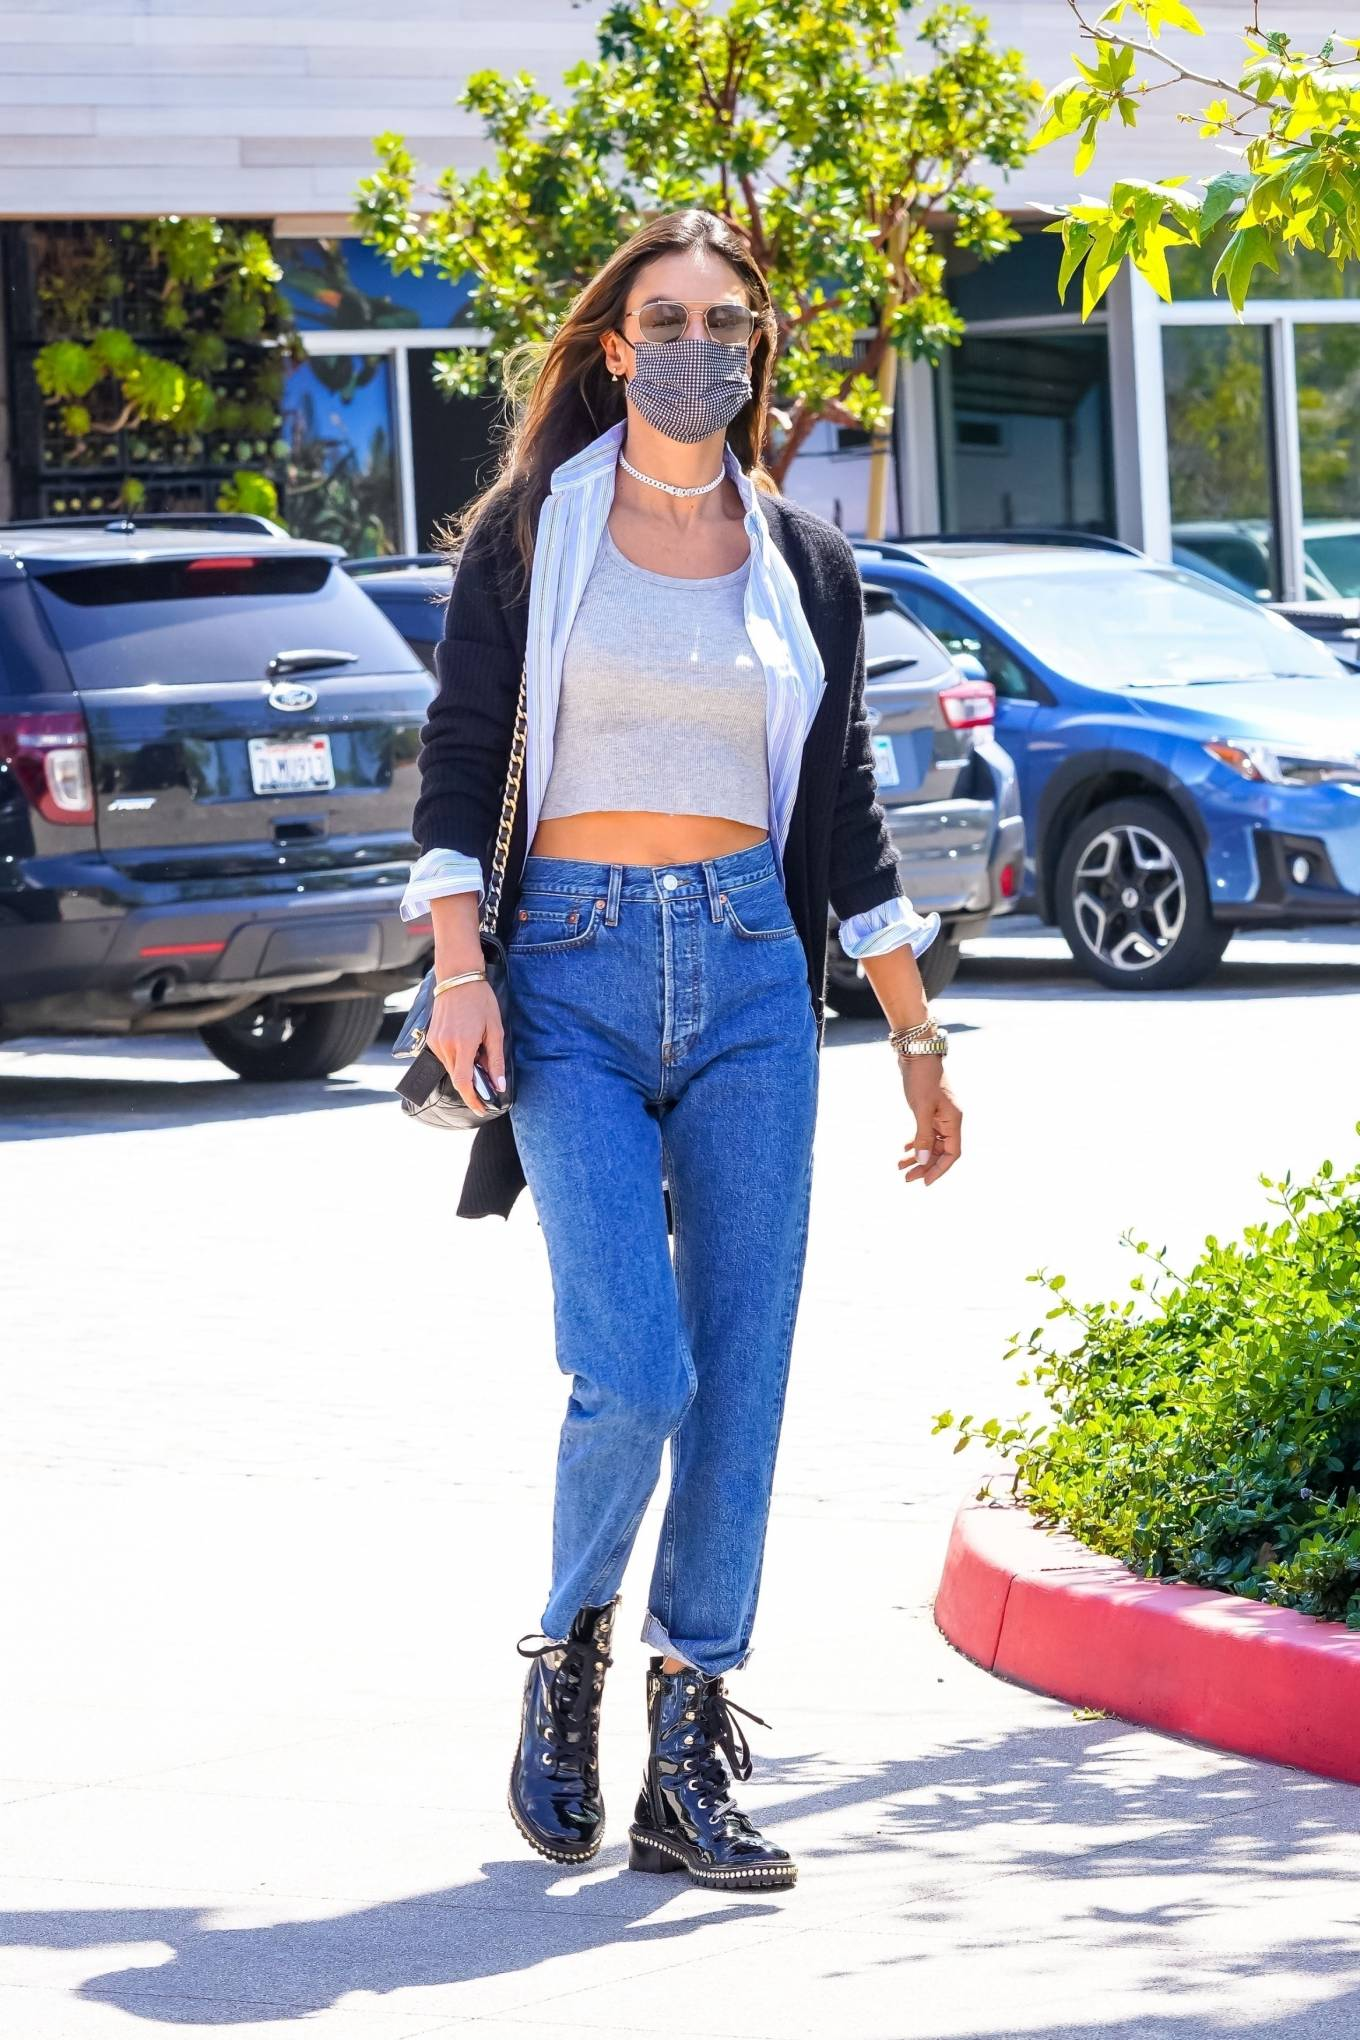 Alessandra Ambrosio wearing round black patent-leather ankle boots by Schutz with block heel